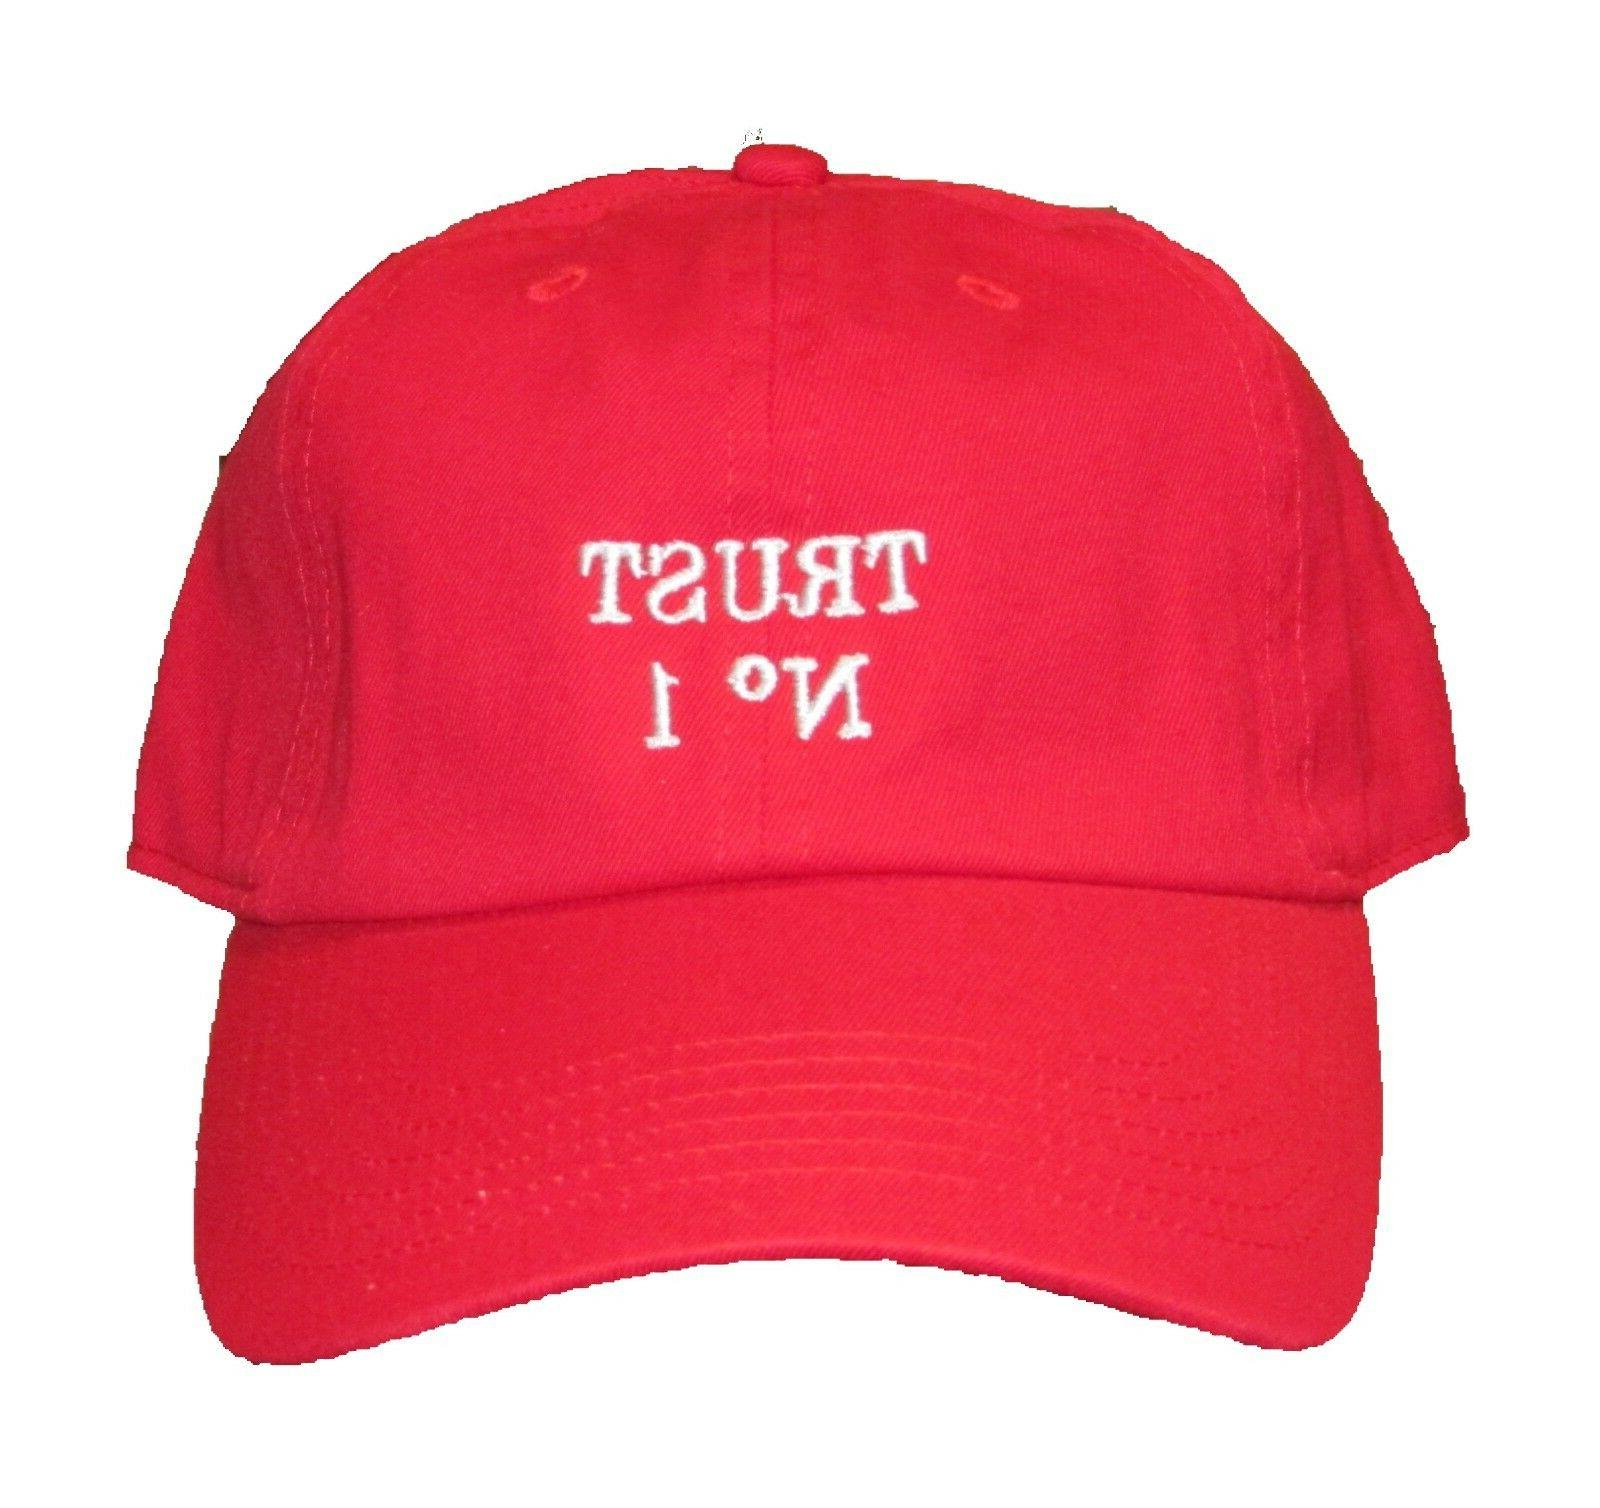 Dad Hat Baseball Trust adjustable Cotton Twill & two